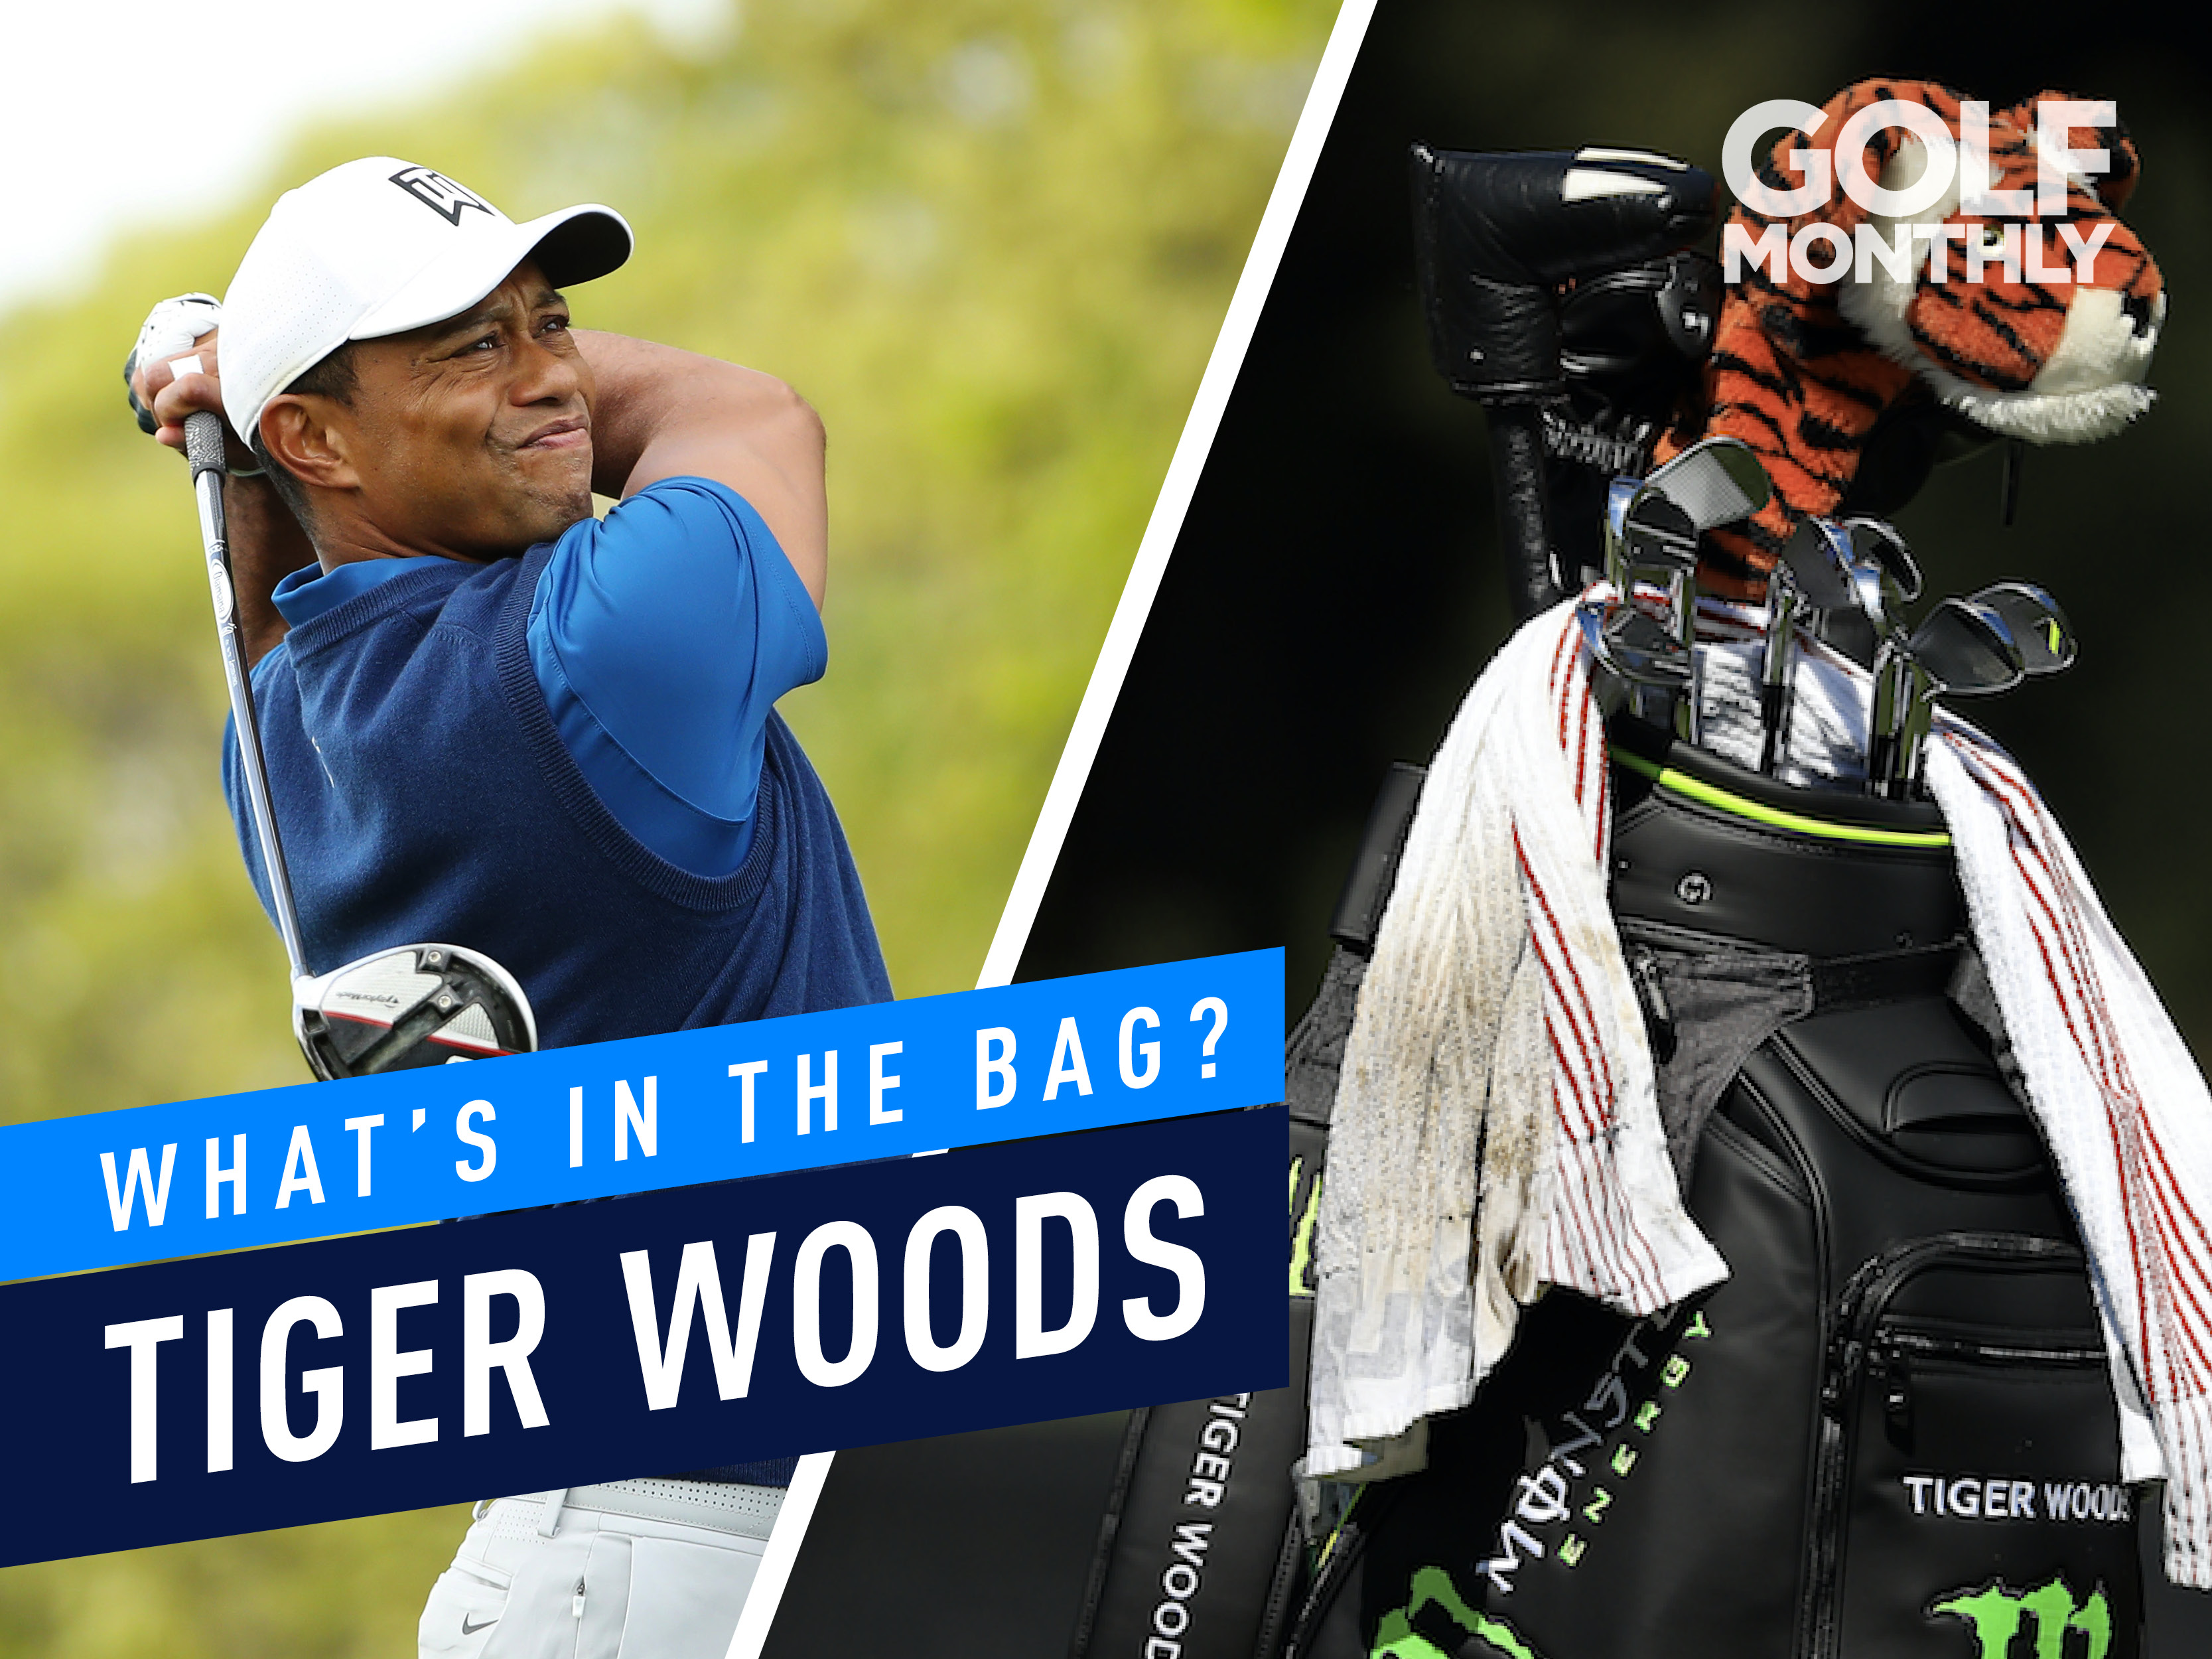 Tiger woods dating now